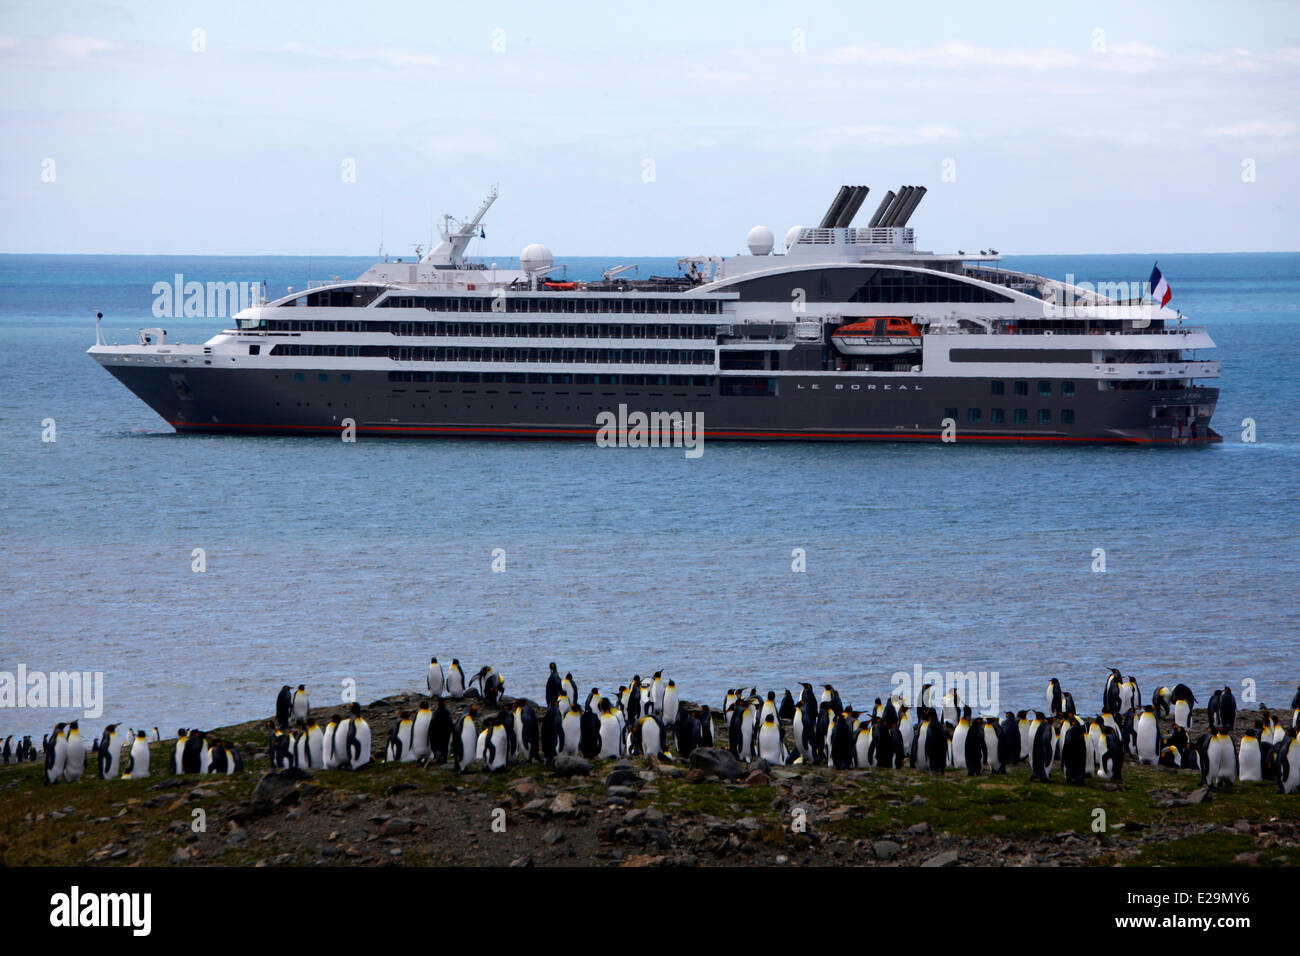 Antarctica, cruise on Boreal ship, South Georgia Island, Saint Andrews Bay, colony of more than 400 000 king penguins, - Stock Image